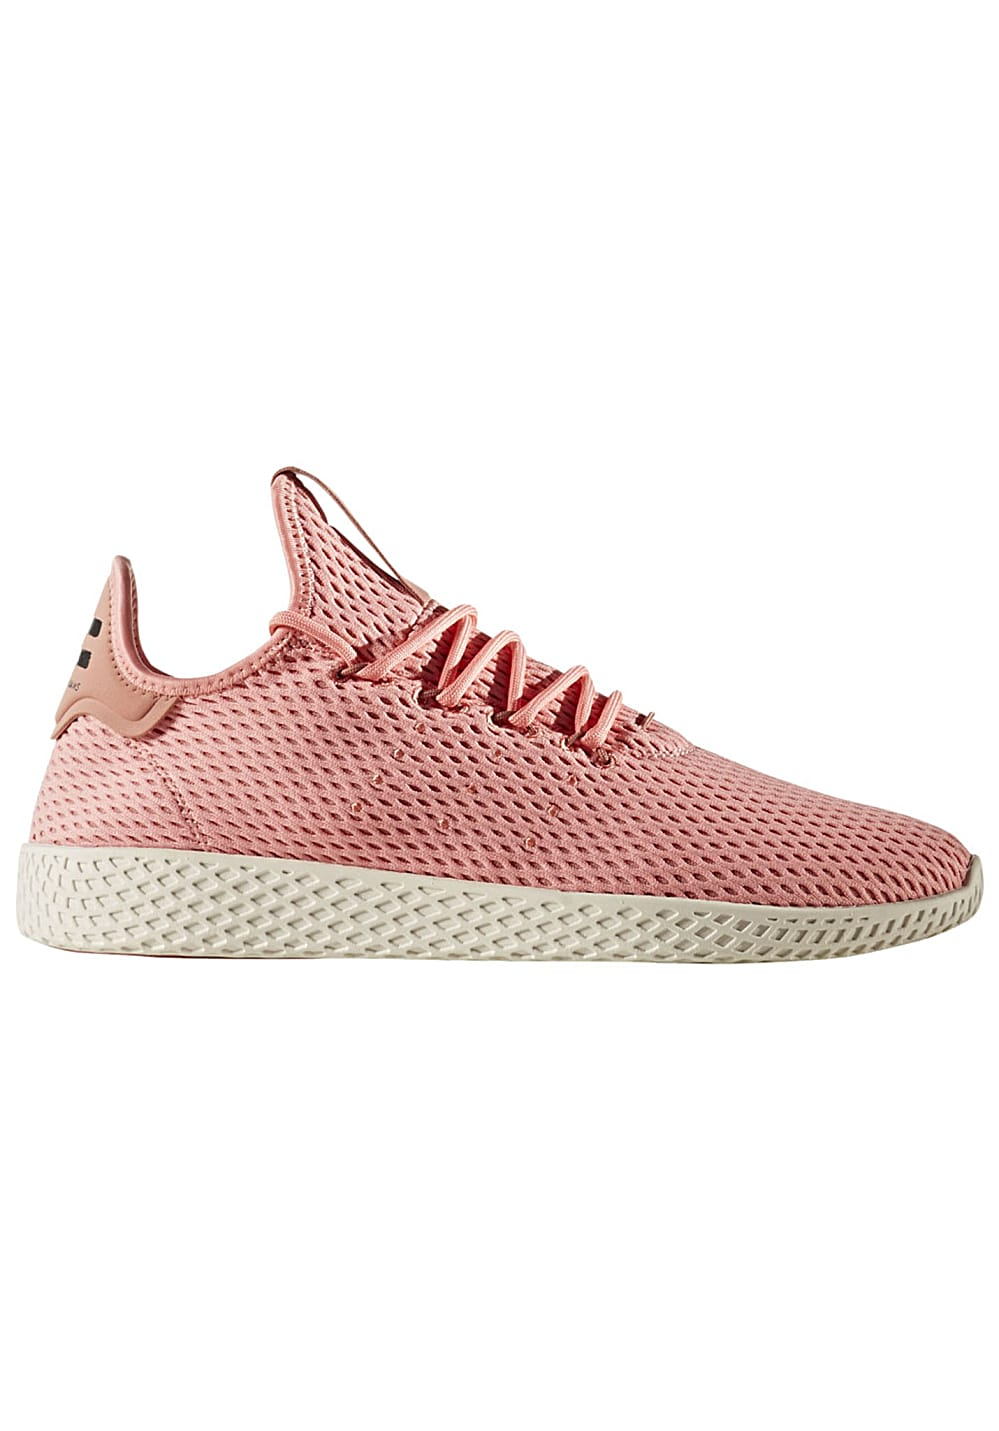 adidas pharrell williams herren pink